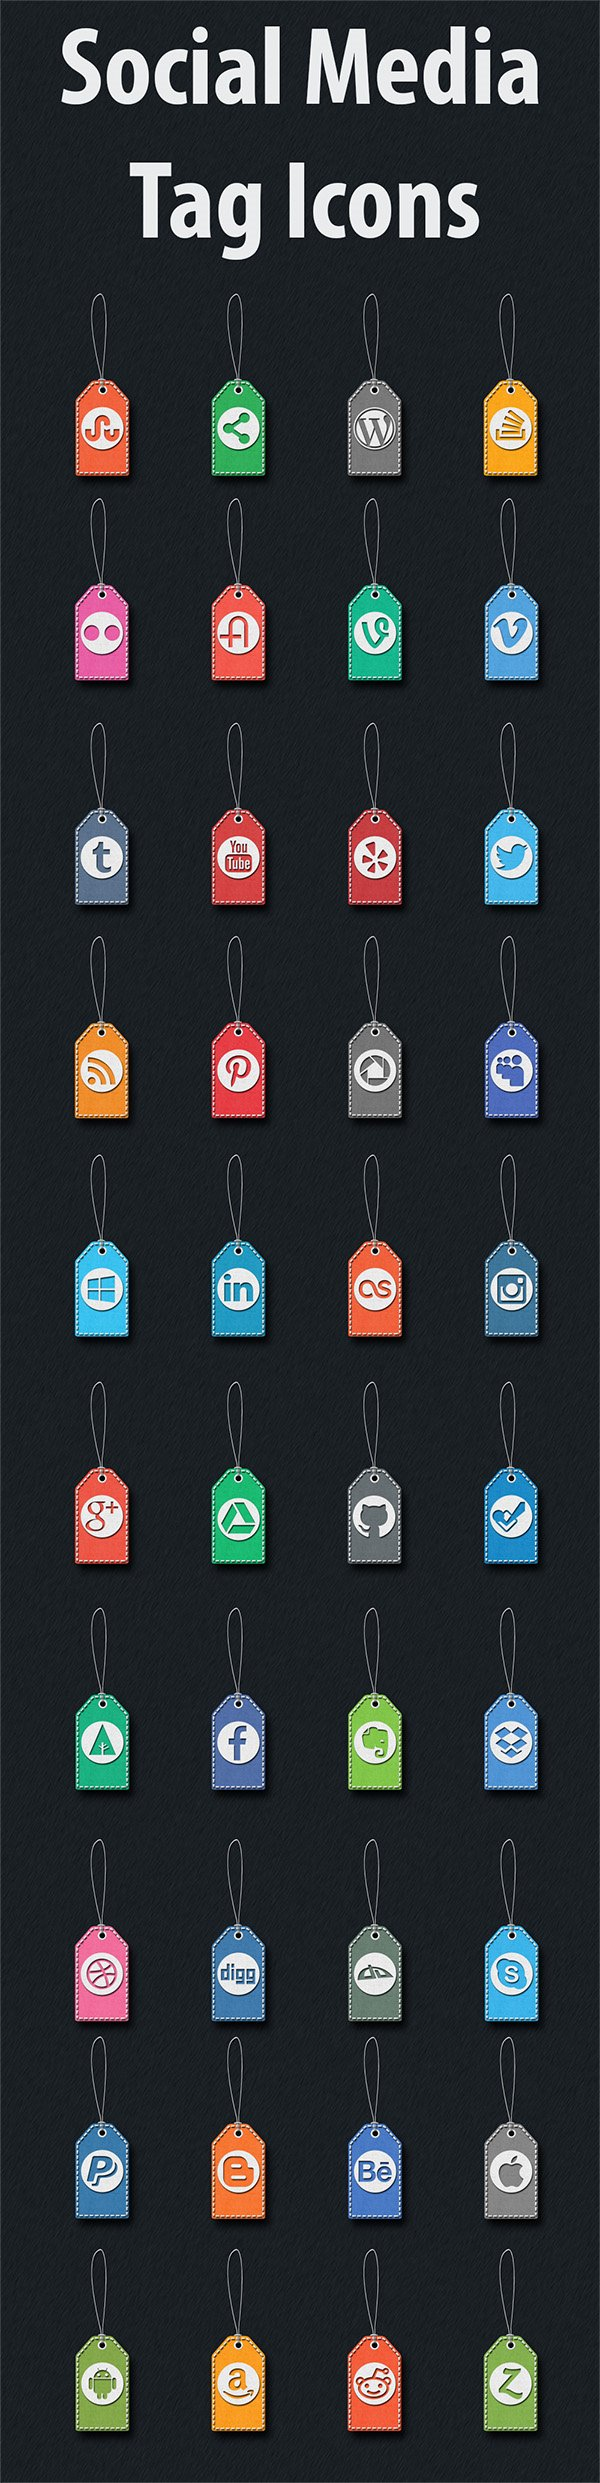 40 Stitched Social Media Tag Icons